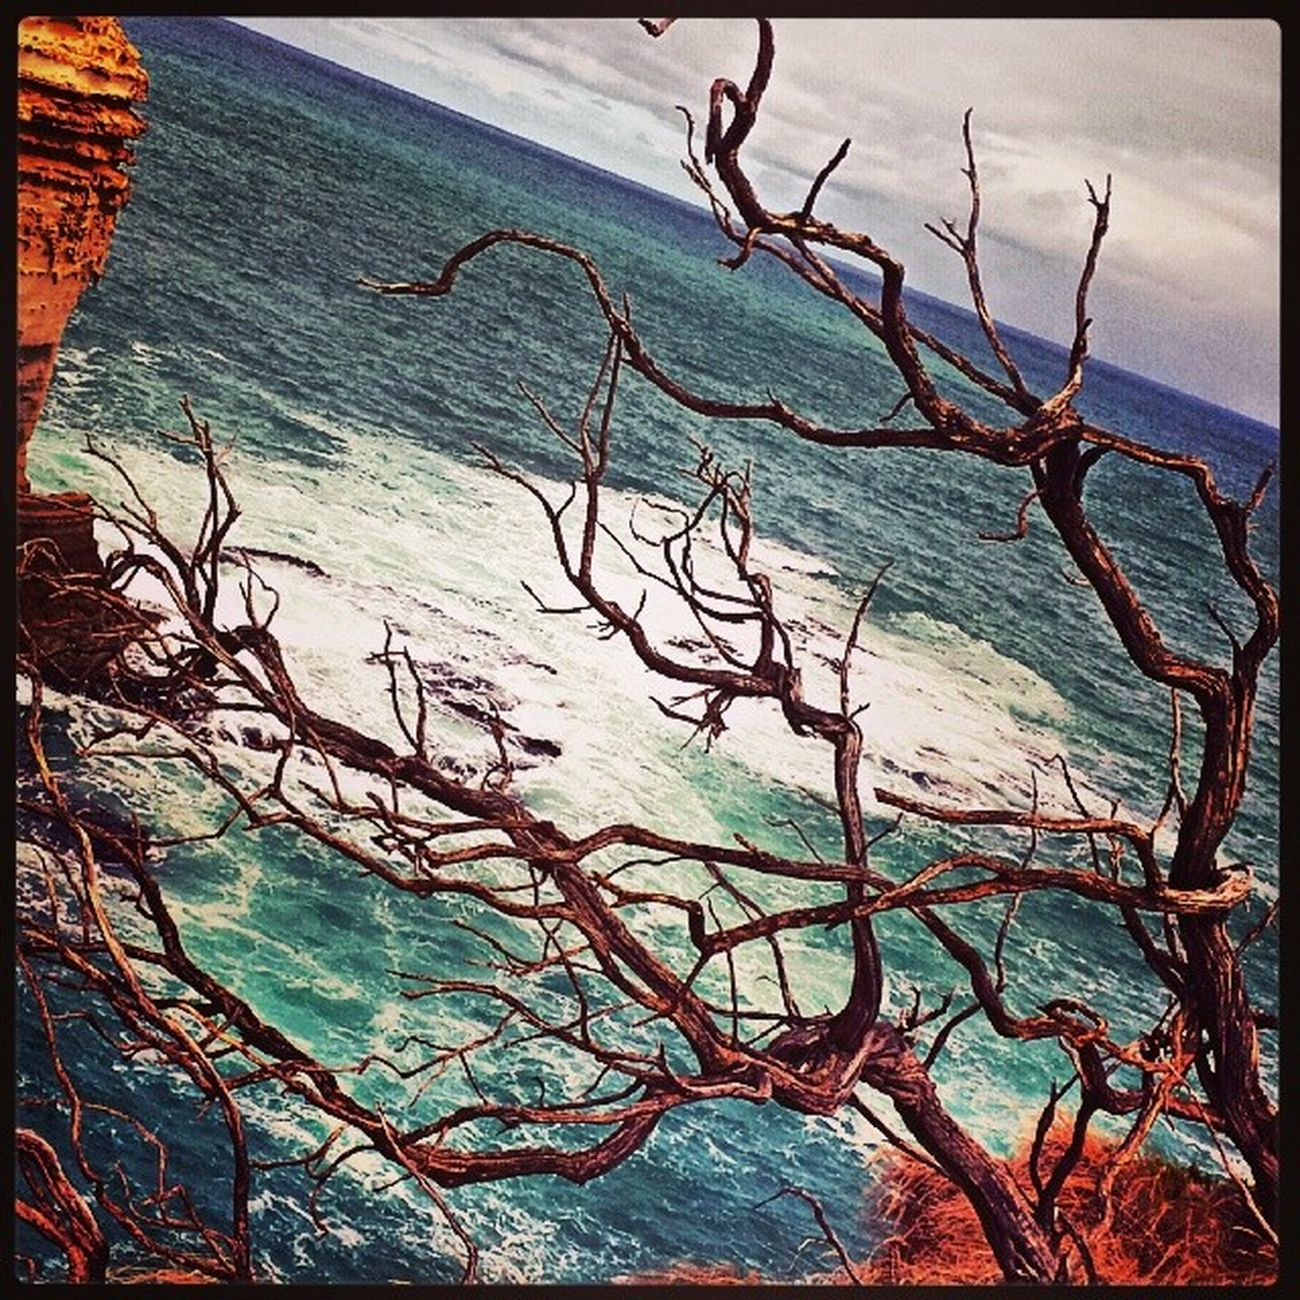 Dead Tree Great Ocean Road Rock Sea Beach Waves Breaking Australia Beautiful Visitvictoria Victoriassecret Port Campbell National Park 12 Apostles Shipwreck Lochardgorge